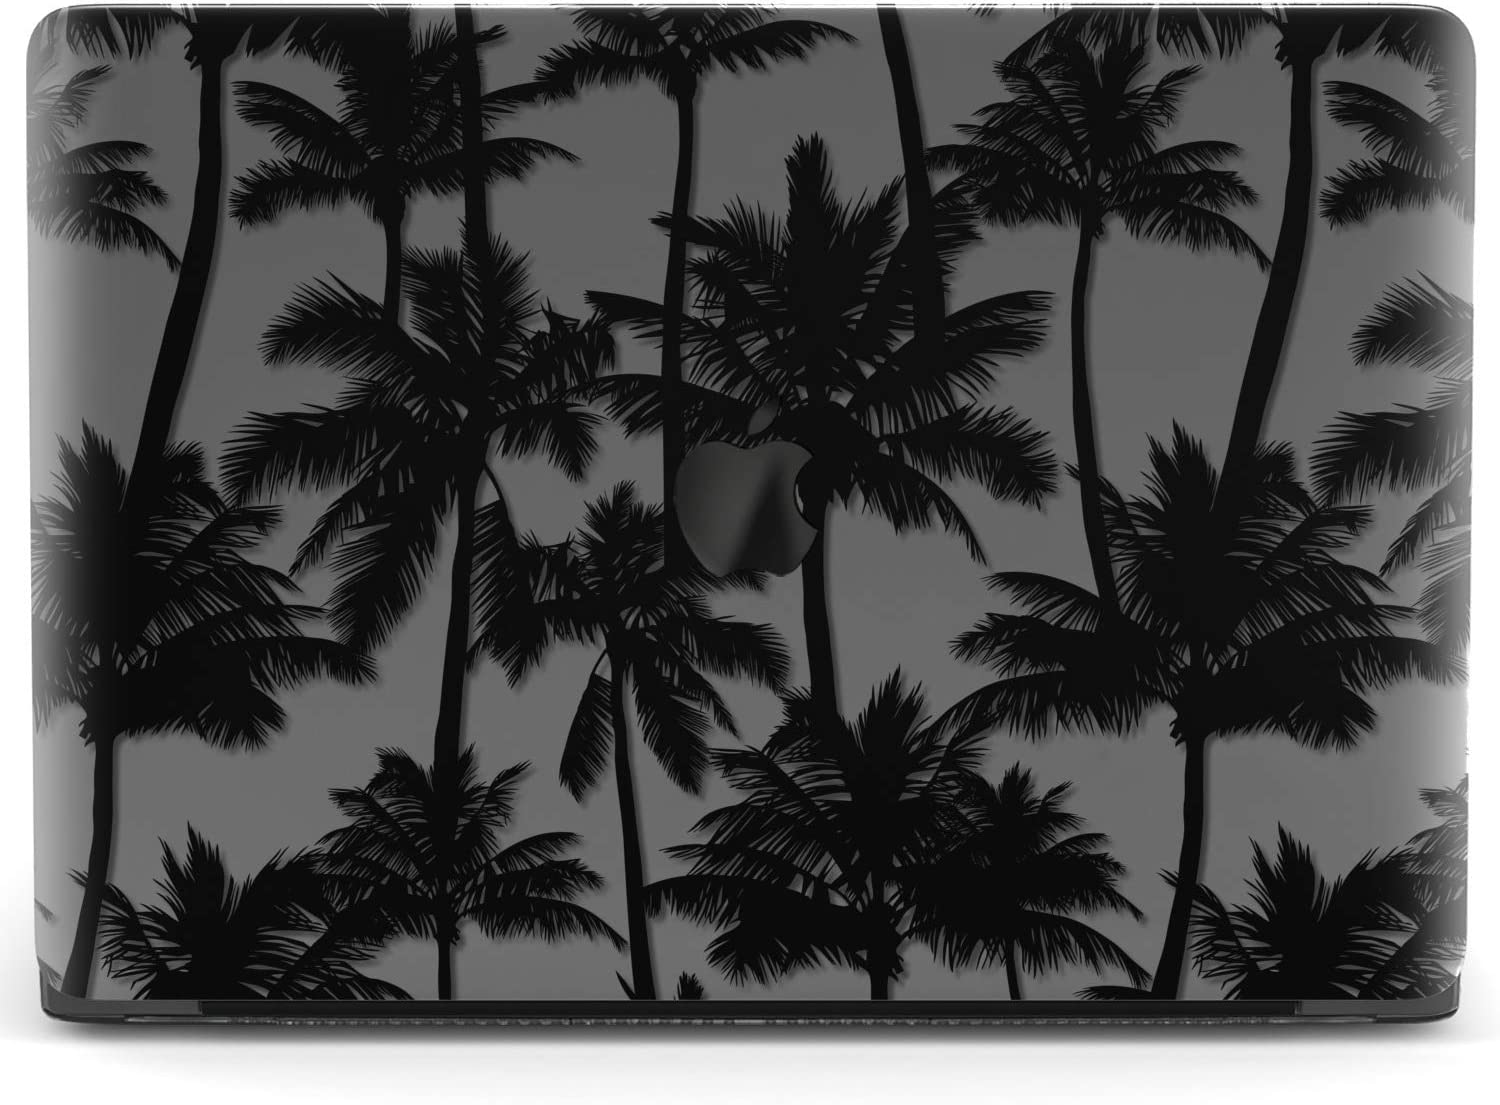 Mertak Hard Case for Apple MacBook Pro 16 Air 13 inch Mac 15 Retina 12 11 2020 2019 2018 2017 Trees California Clear Laptop Cover Plastic Touch Bar Palms Cool Design Print Protective Black Tropical